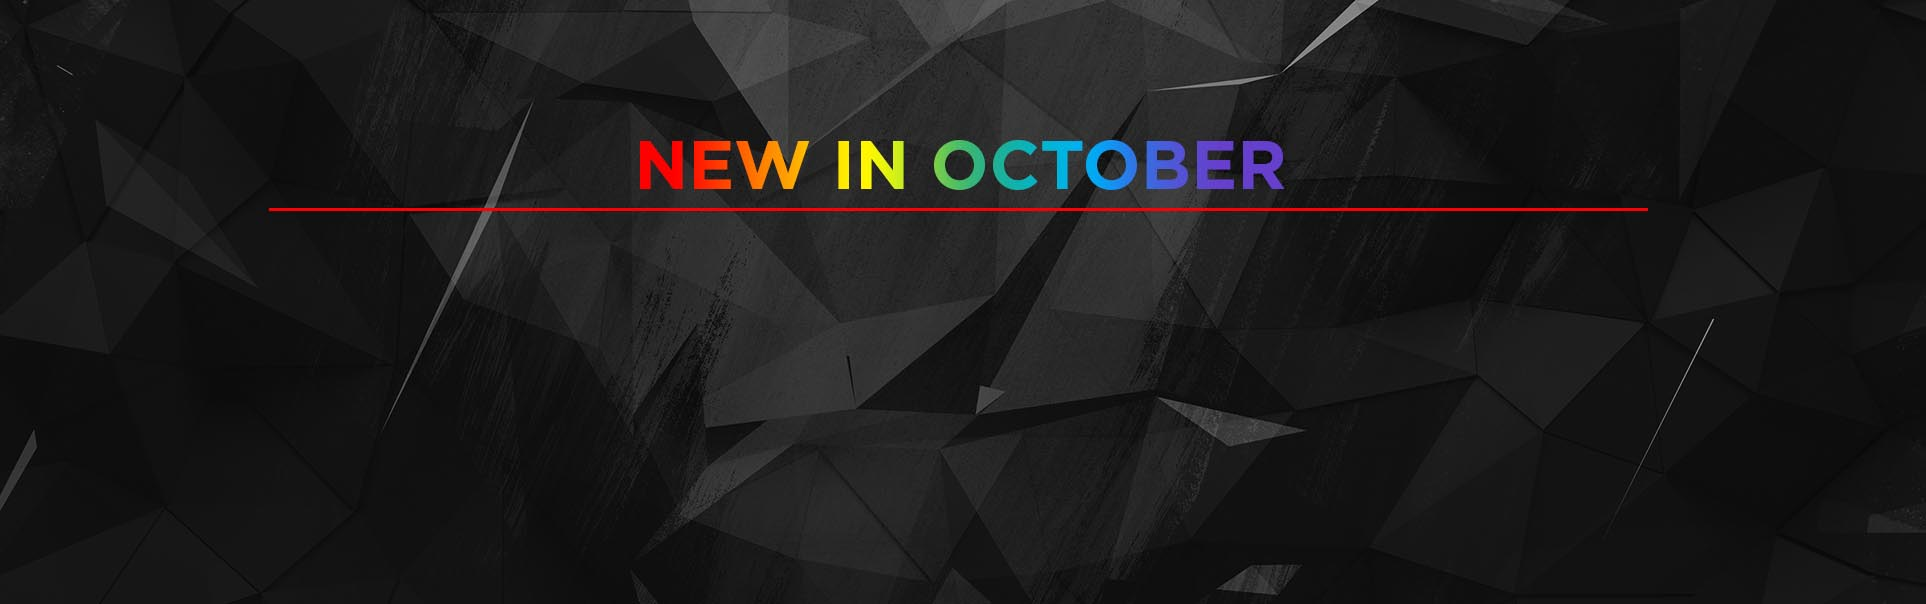 New In October